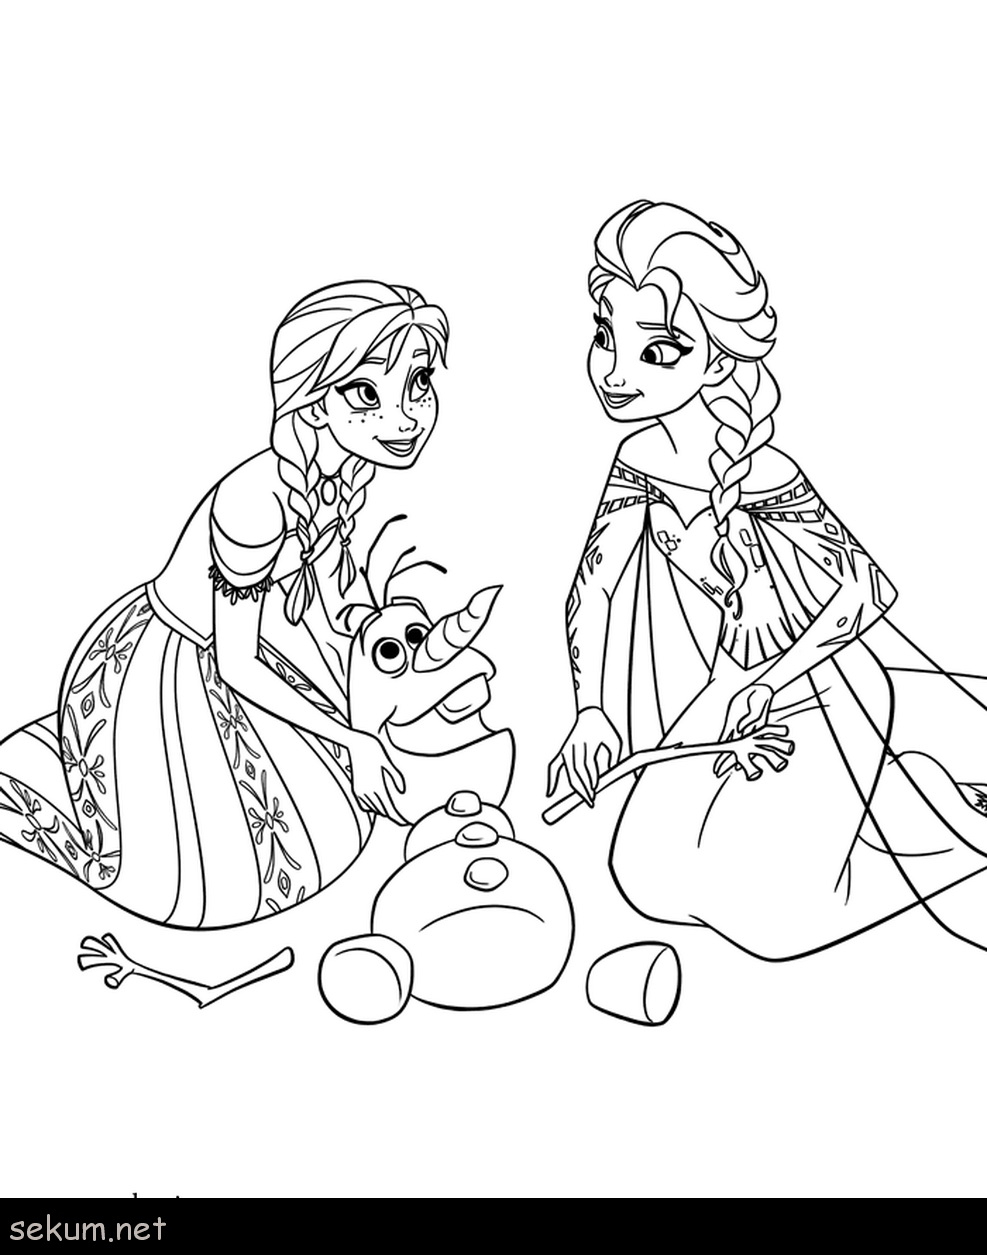 Anna Coloring Pages Frozen Elsa And Anna Coloring Pages Olaf Free